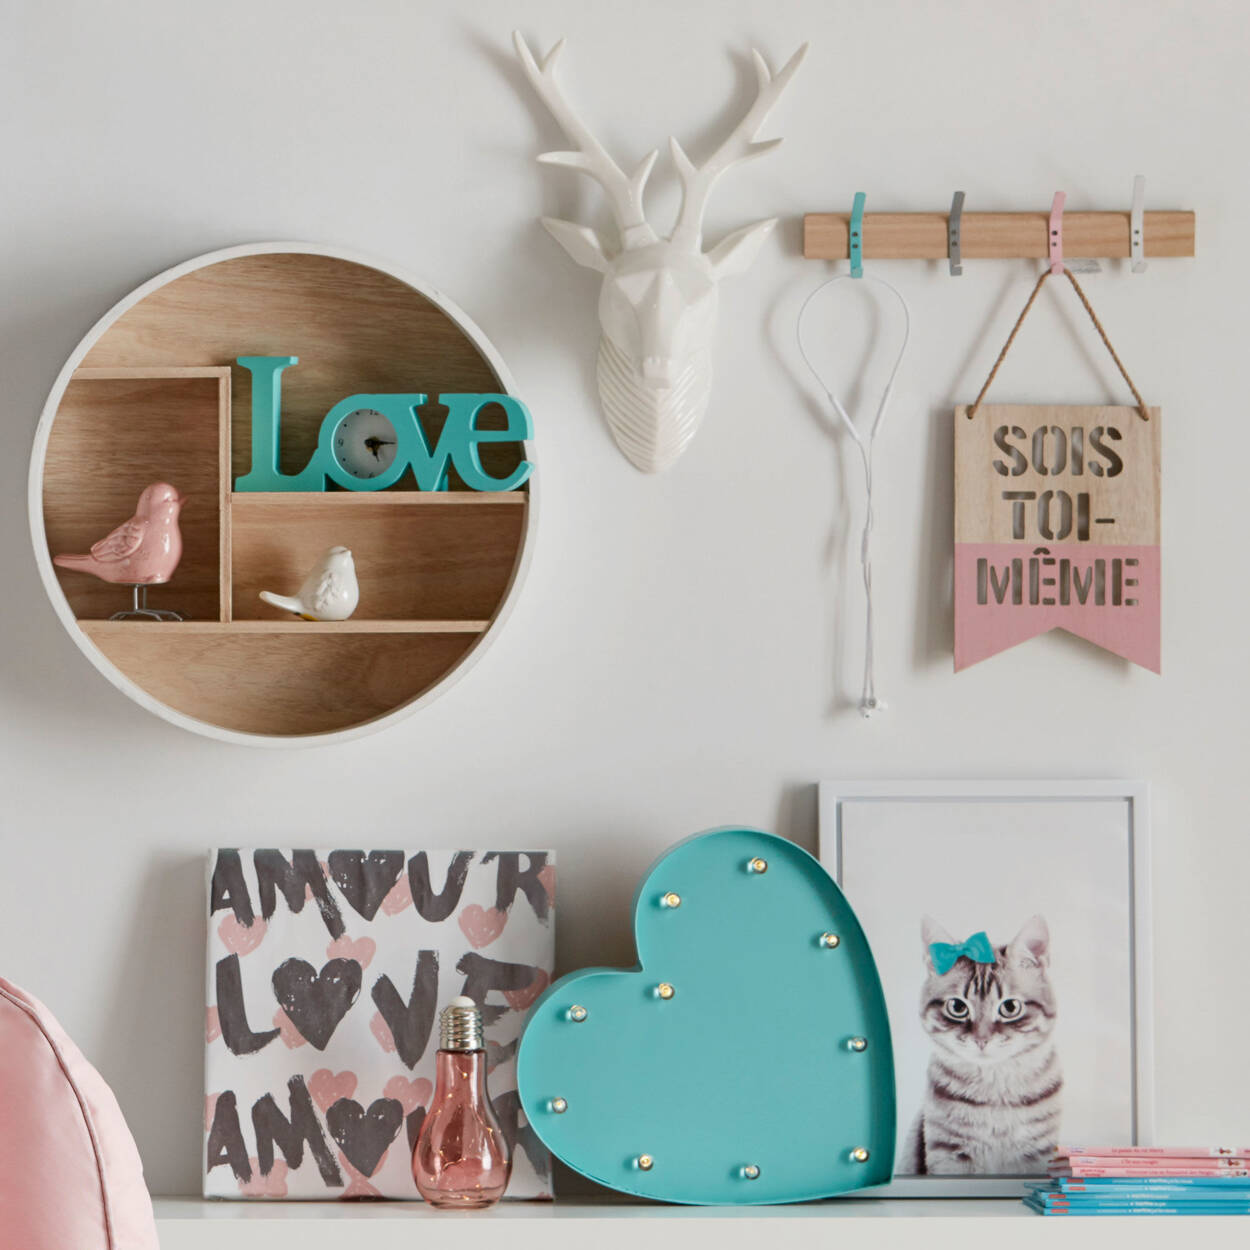 Decorative Metal Heart with LED Lights